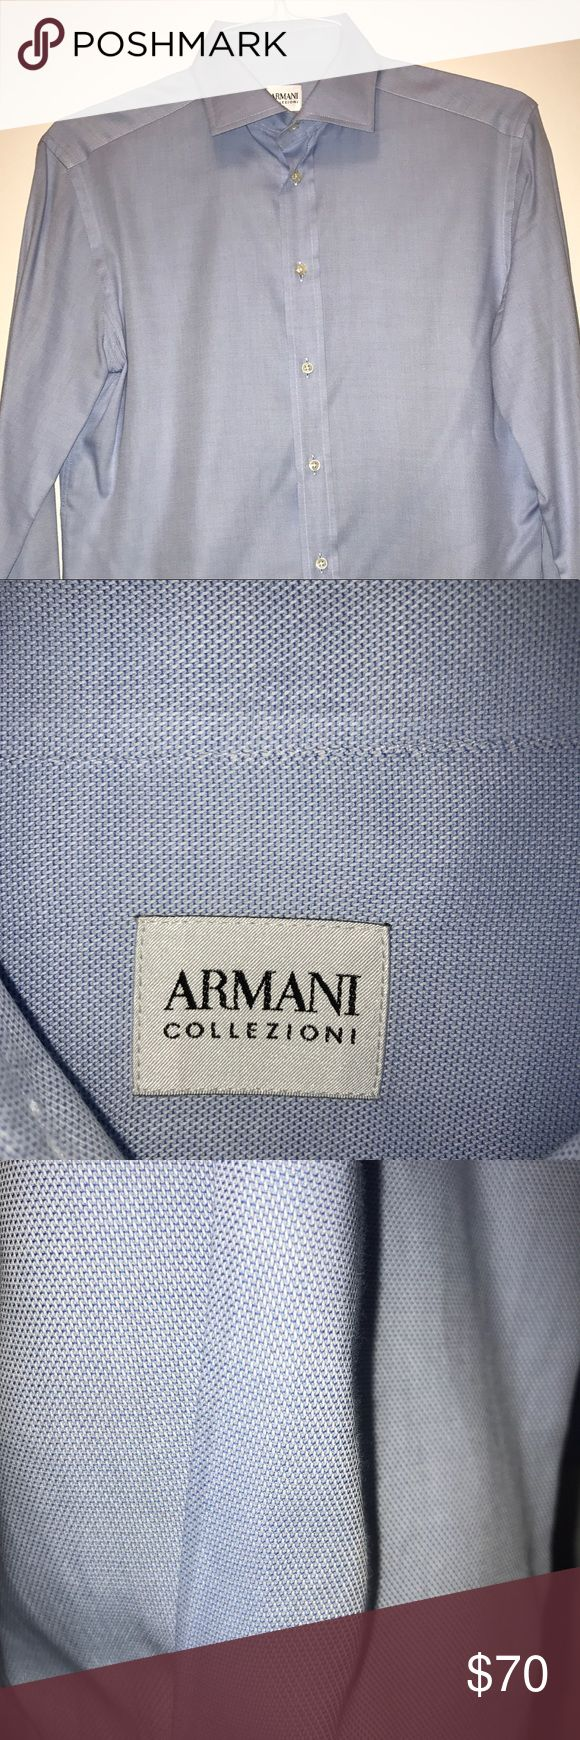 Armani Collezioni Men's Slim Fit Dress Shirt Armani Collezioni Men Slim Fit Cotton Dress Shirt Blue by Armani. Armani Collezioni Shirts Dress Shirts